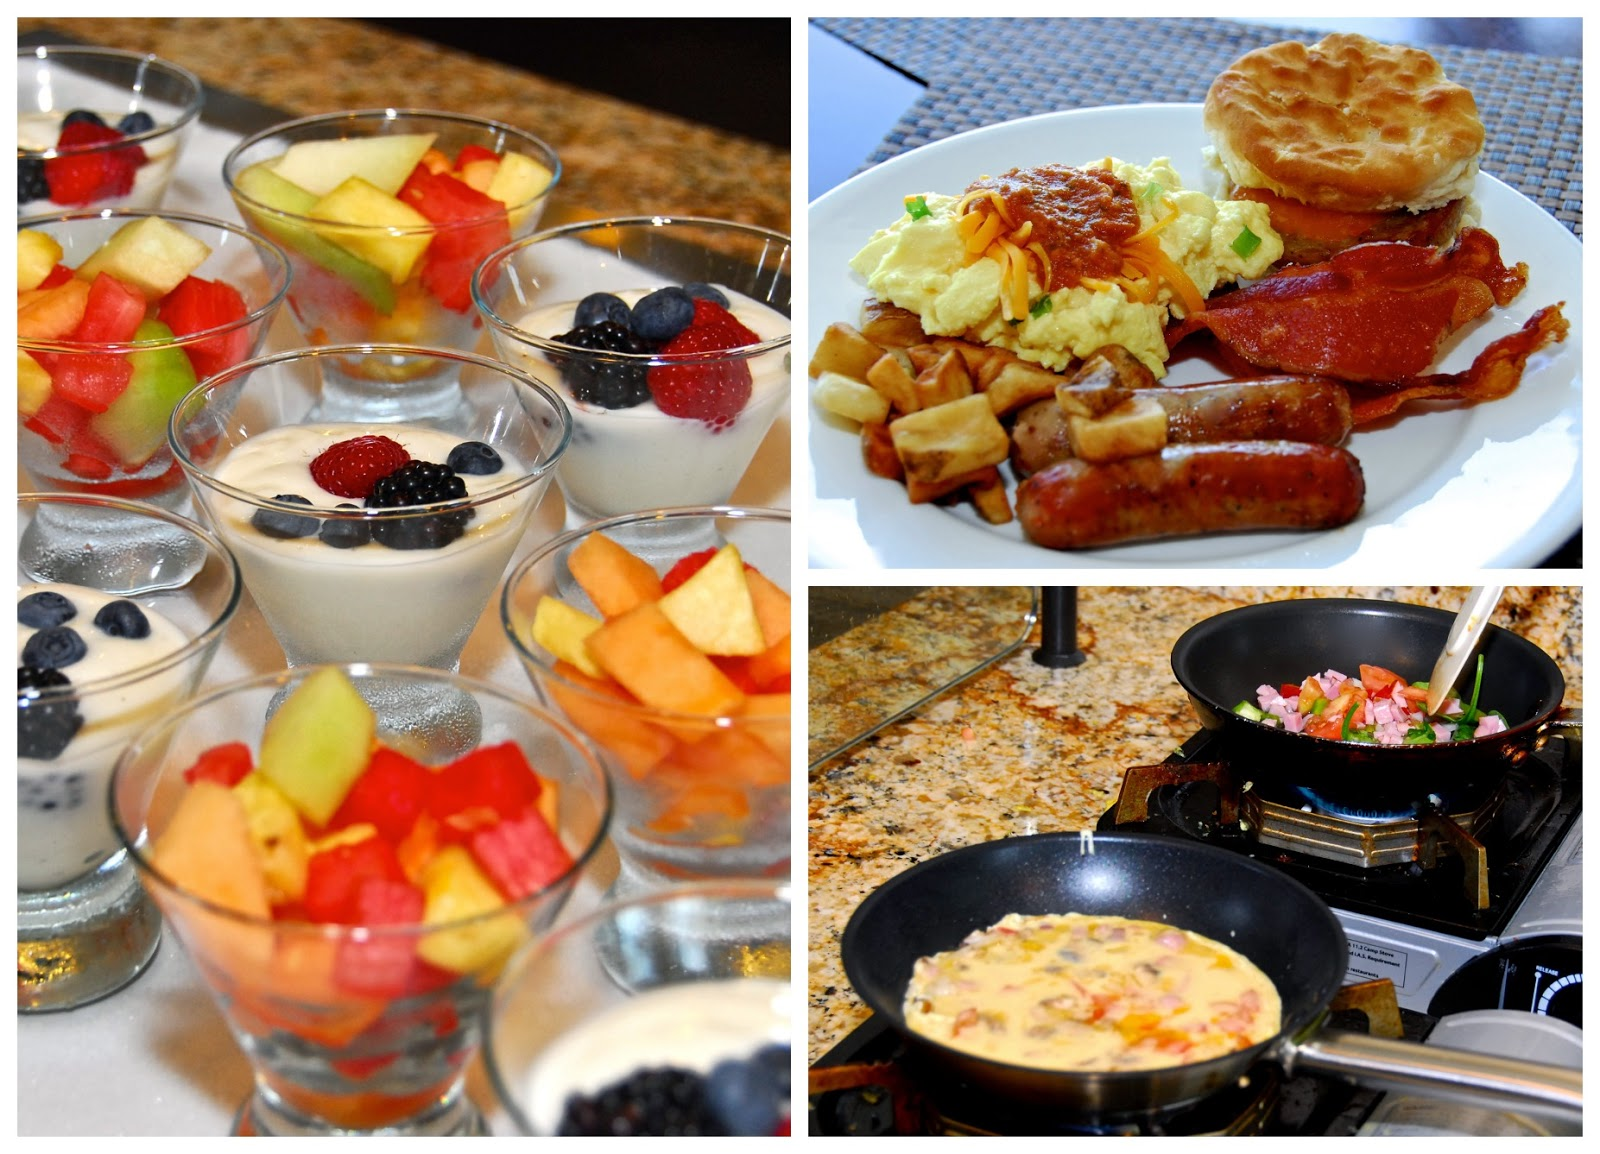 We Enjoyed A Leisurely Breakfast With Picturesque Views Of The Resort Grounds To Finish Our Hearty Brunch Opted For Customized Oatmeal And More Fresh